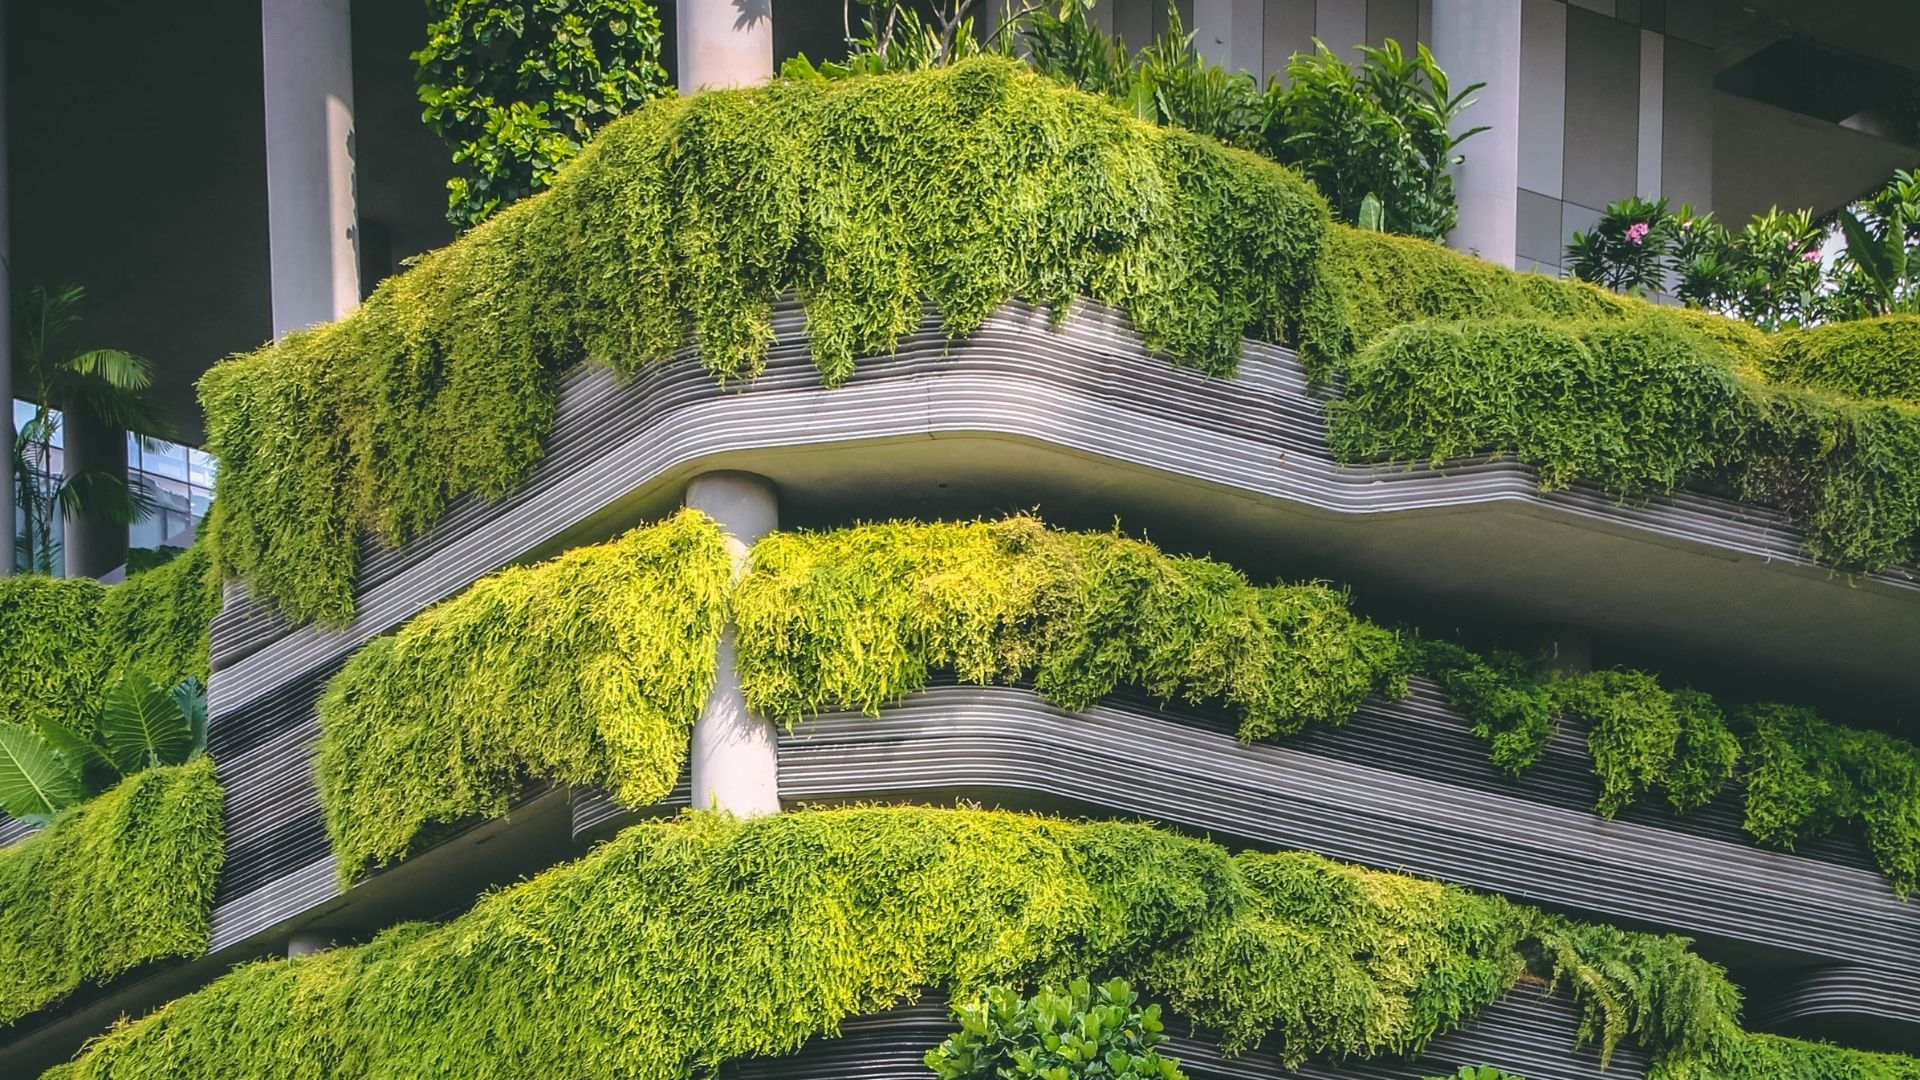 Integrating nature in the building sector